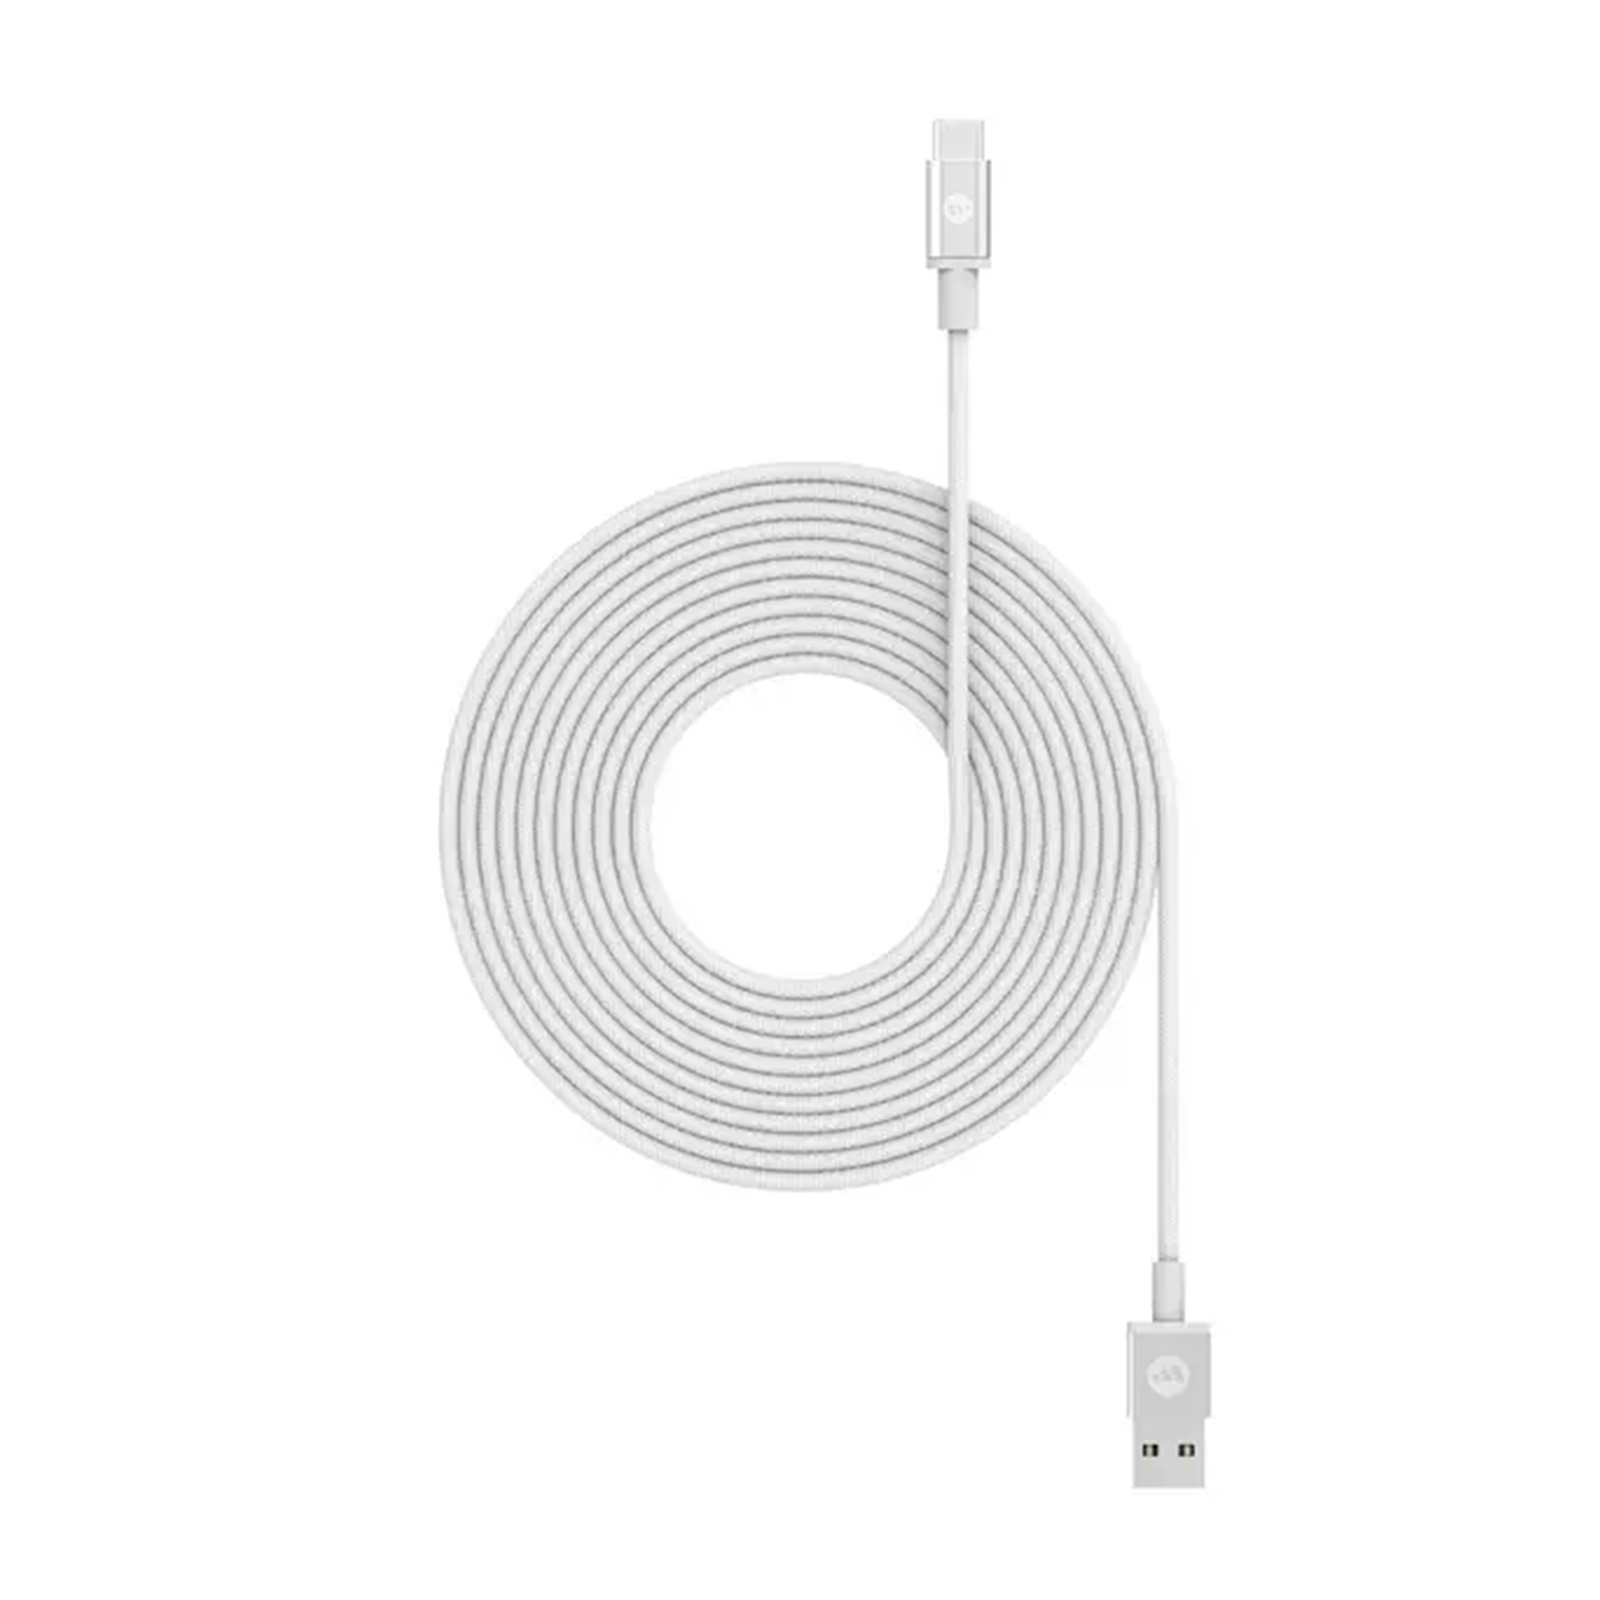 Buy The Mophie Usb A To Usb C 3m White 409903207 Online Pbtech Co Nz Three ports line up along one end, with a slightly angled side home to. pb tech